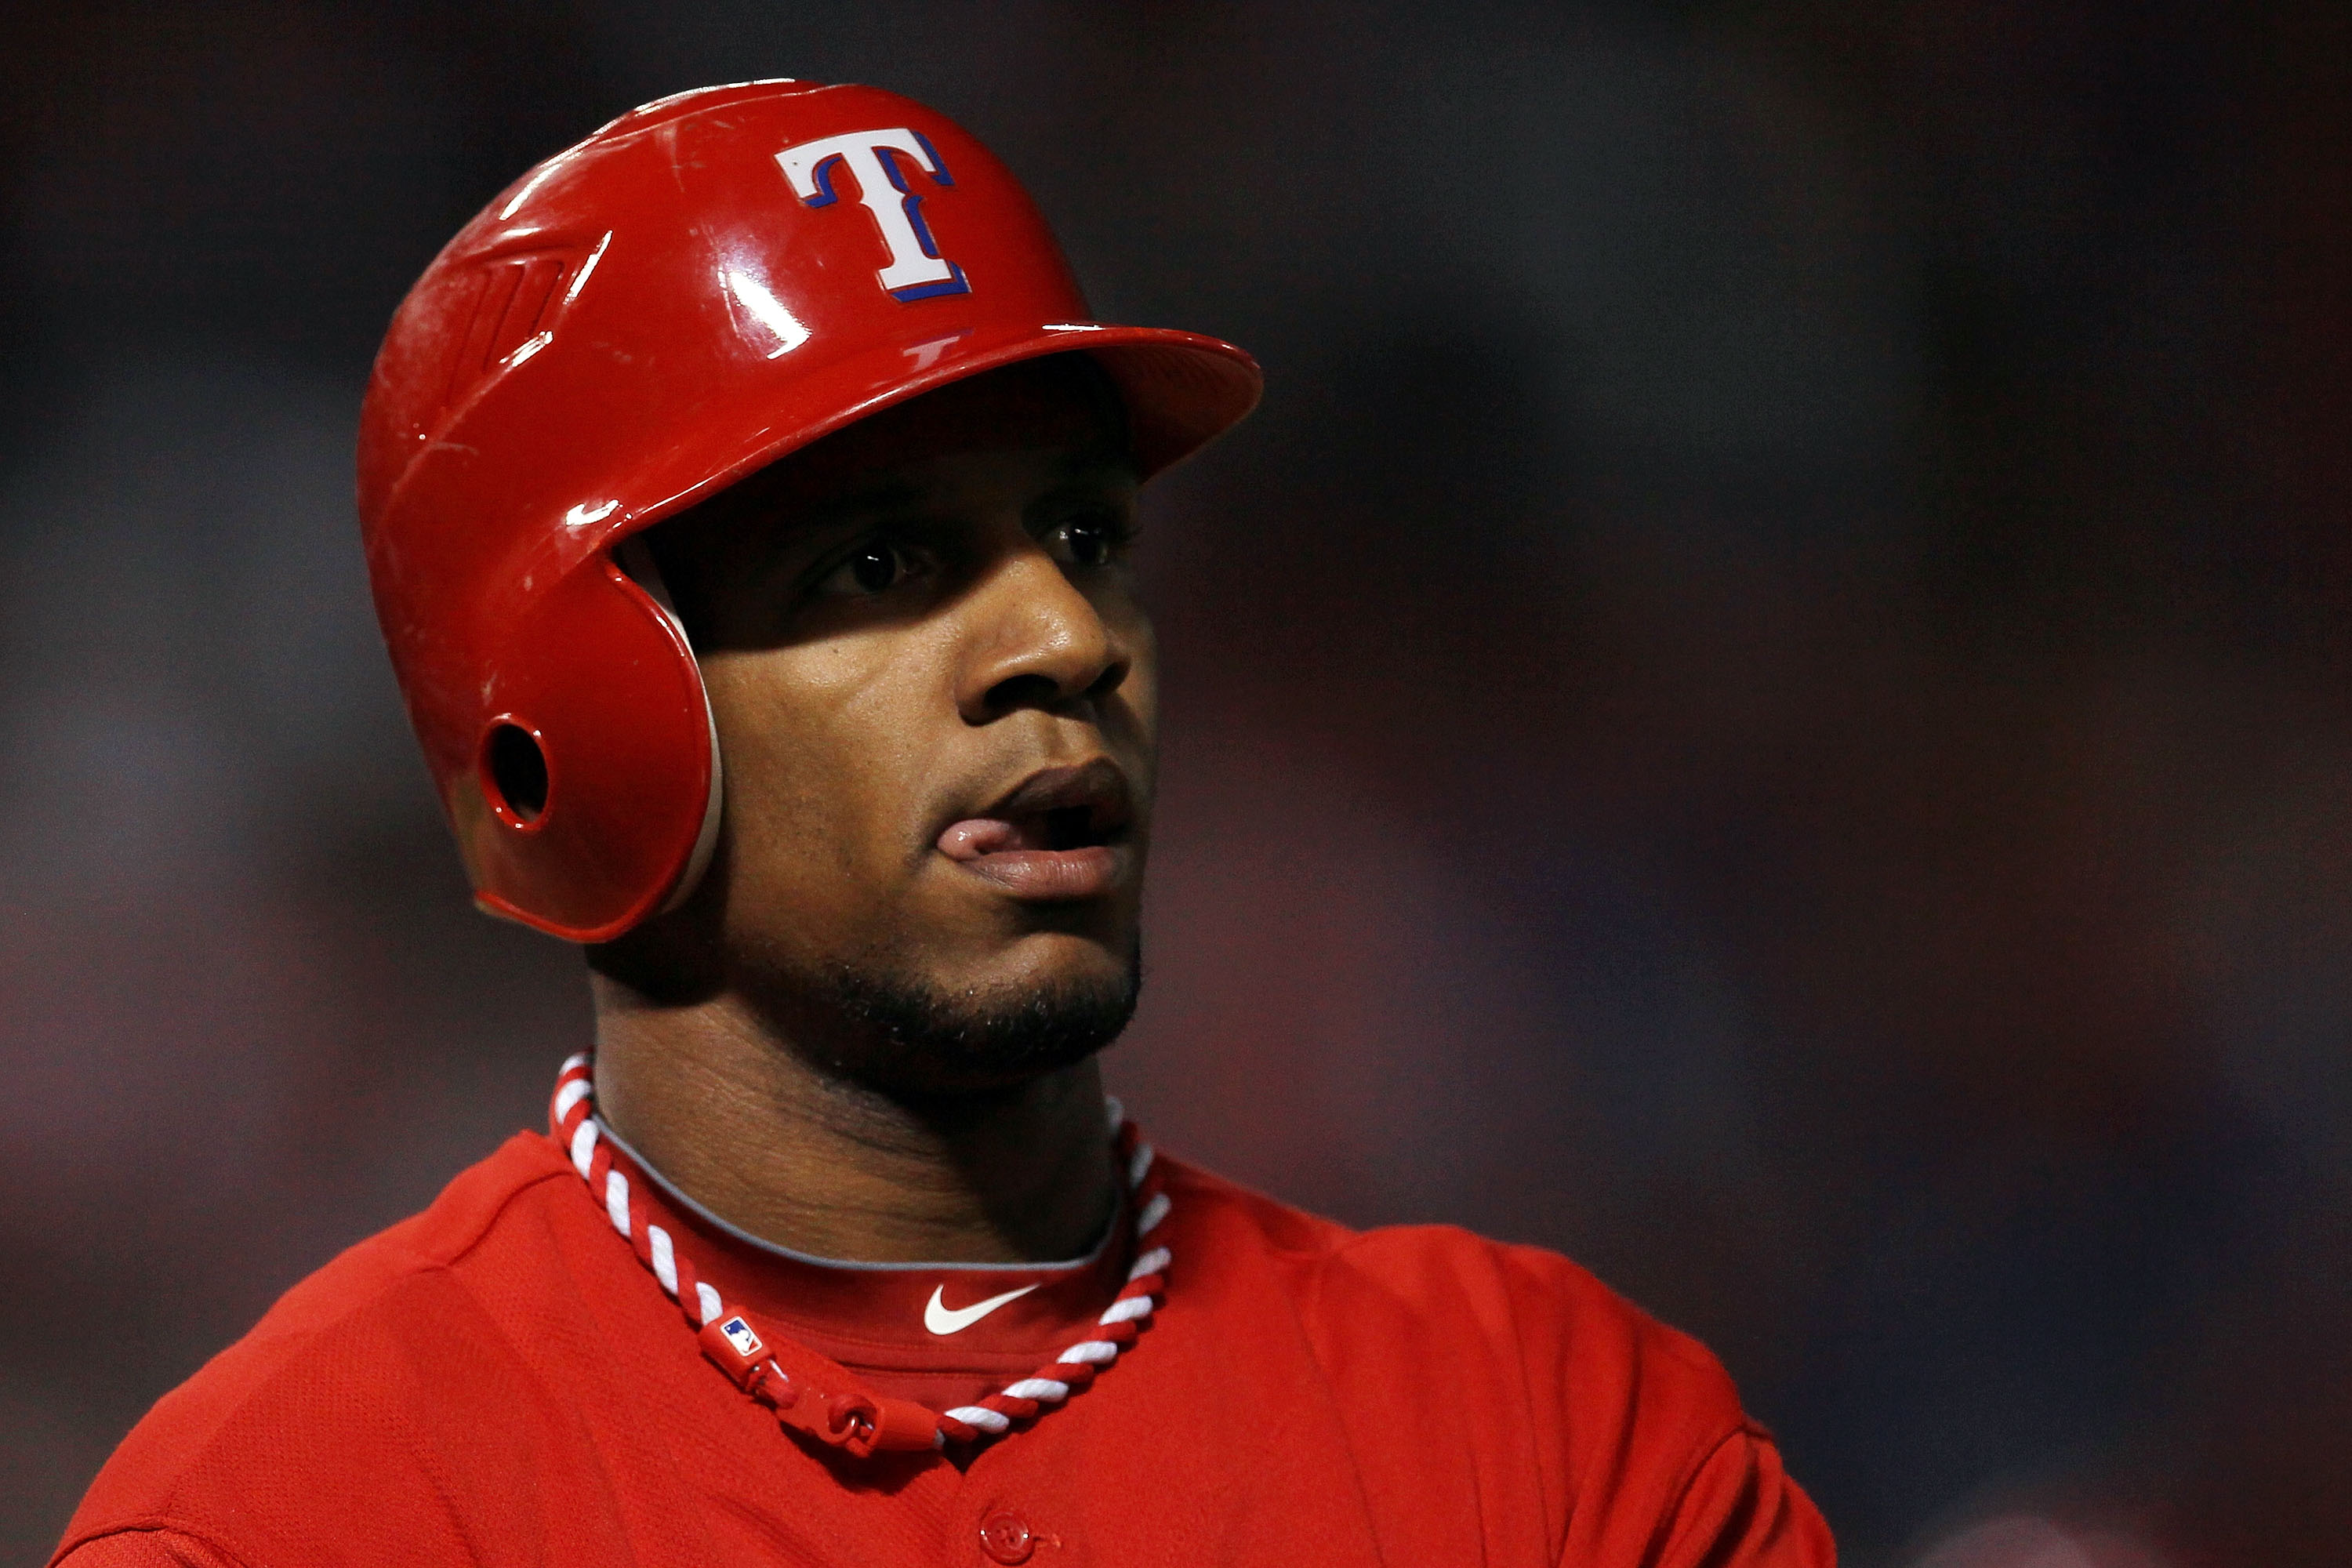 ARLINGTON, TX - OCTOBER 15:  Julio Borbon #29 of the Texas Rangers looks on after striking out against the New York Yankees in Game One of the ALCS during the 2010 MLB Playoffs at Rangers Ballpark in Arlington on October 15, 2010 in Arlington, Texas.  (Ph